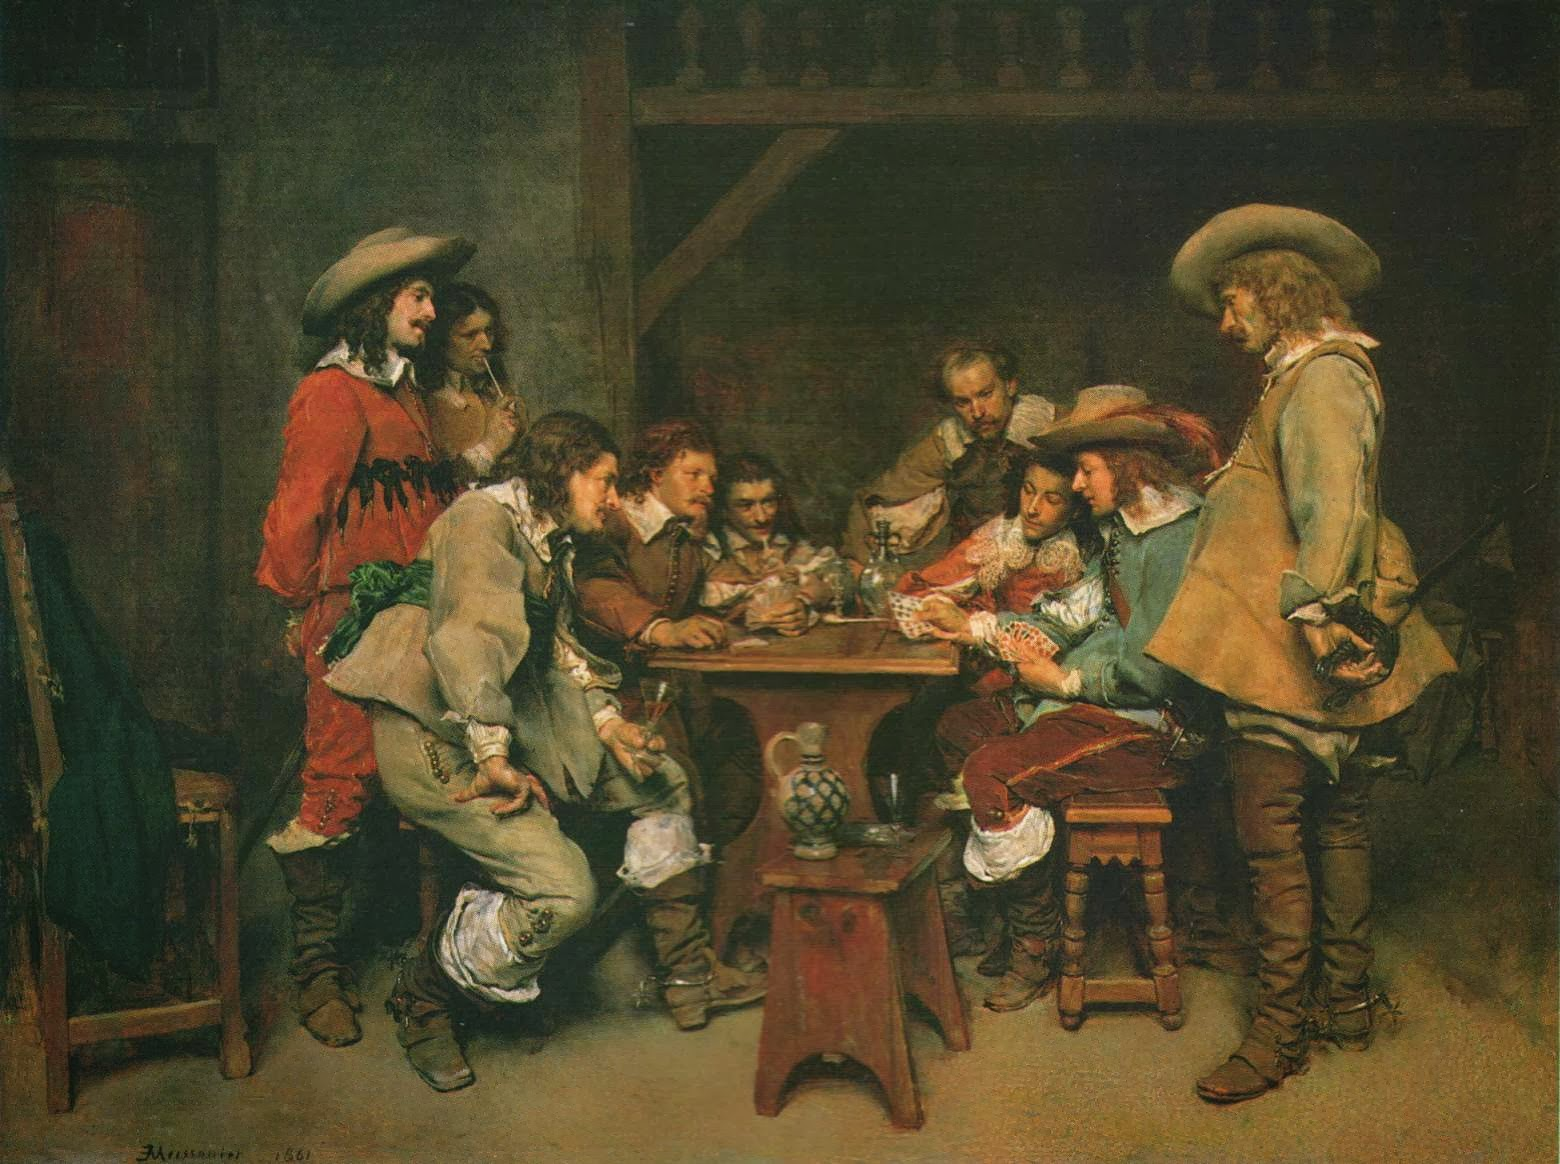 2 Ernest_Meissonier_-_A_Game_of_Piquet.jpg